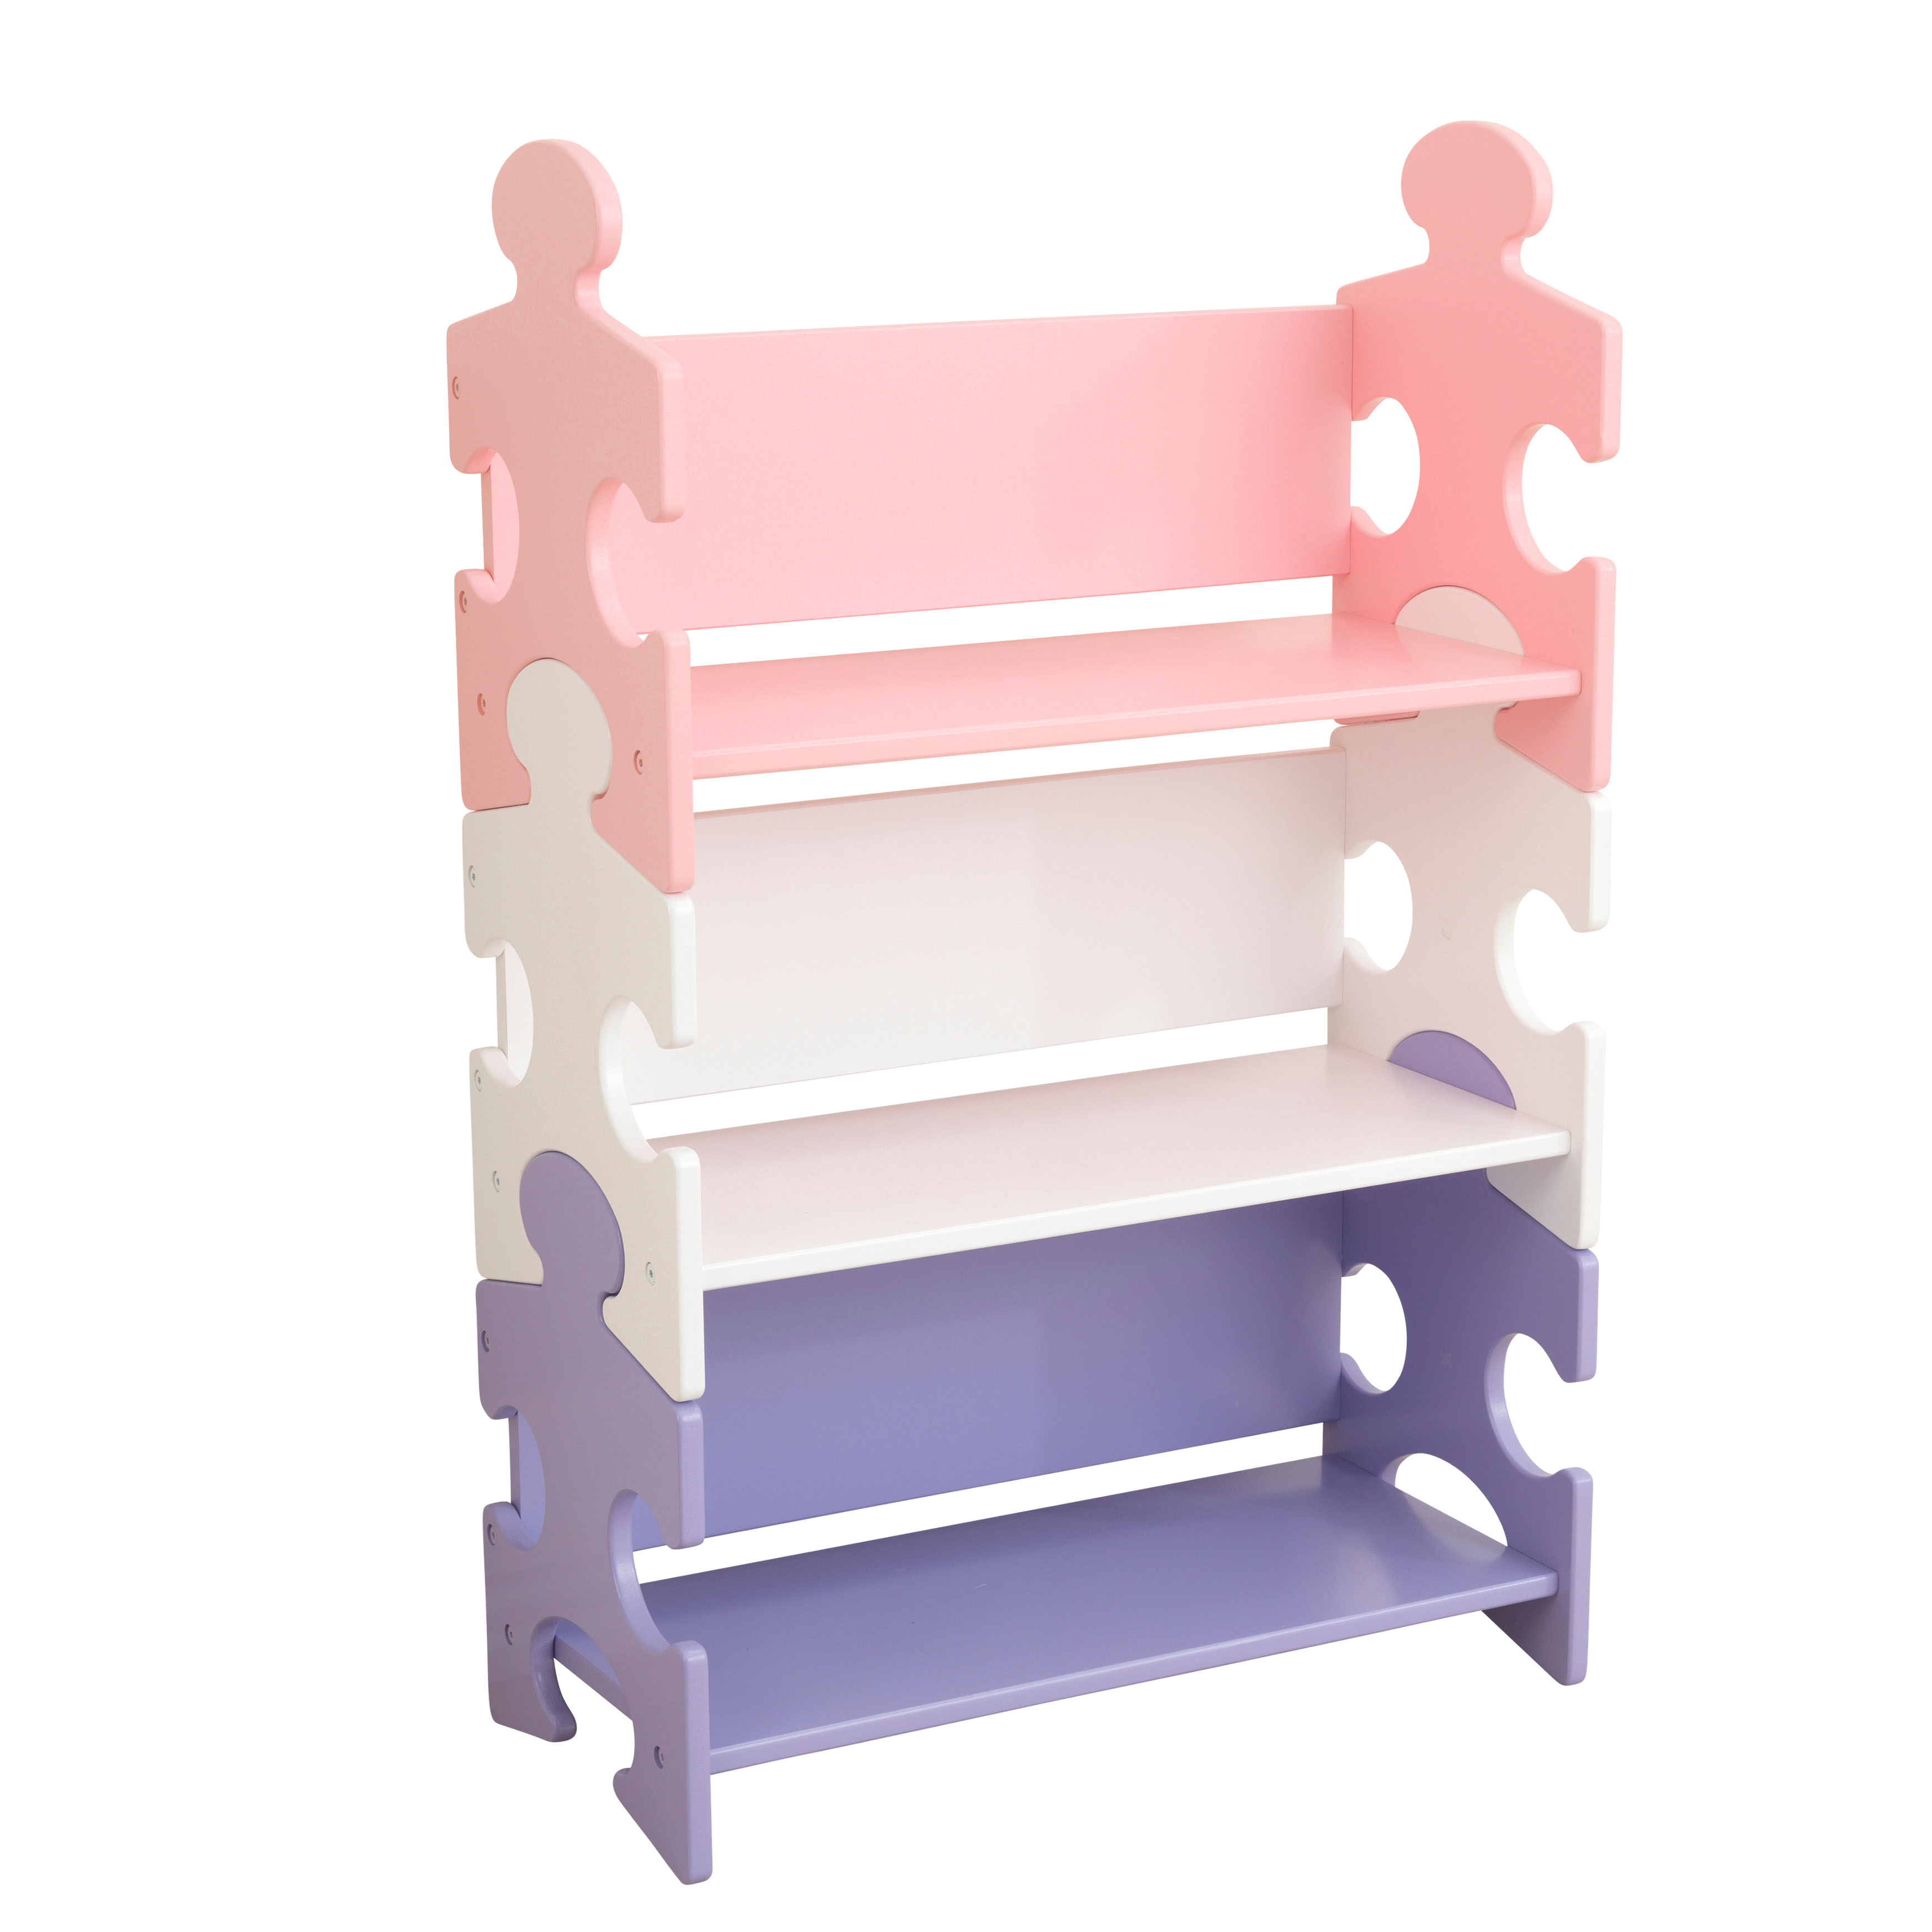 KidKraft Puzzle Bookshelf, Red/Blue/Green or Purple/White/Pink